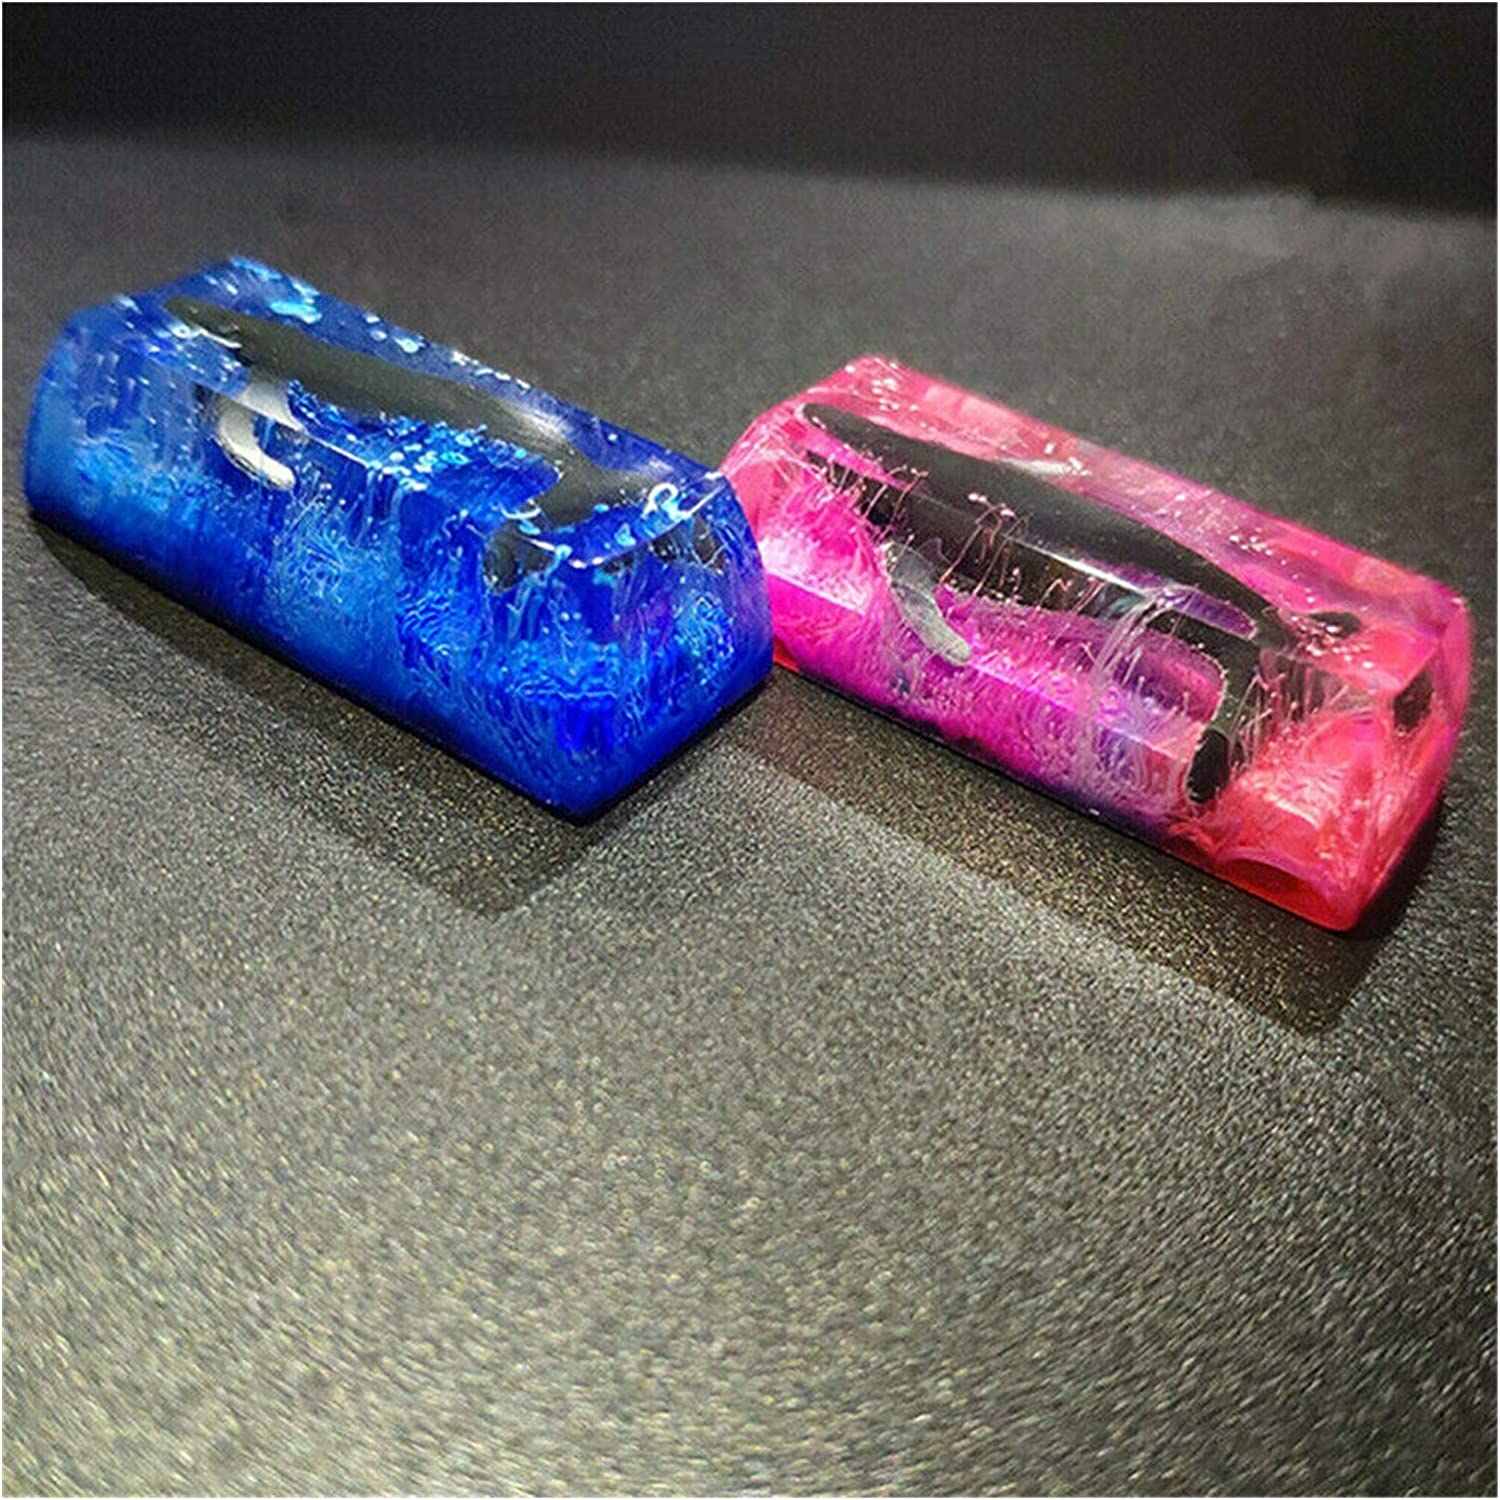 The Sea Keycap Very popular 2.25X Resin Keycaps Key Mechanical Complete Free Shipping Cap Keyboard